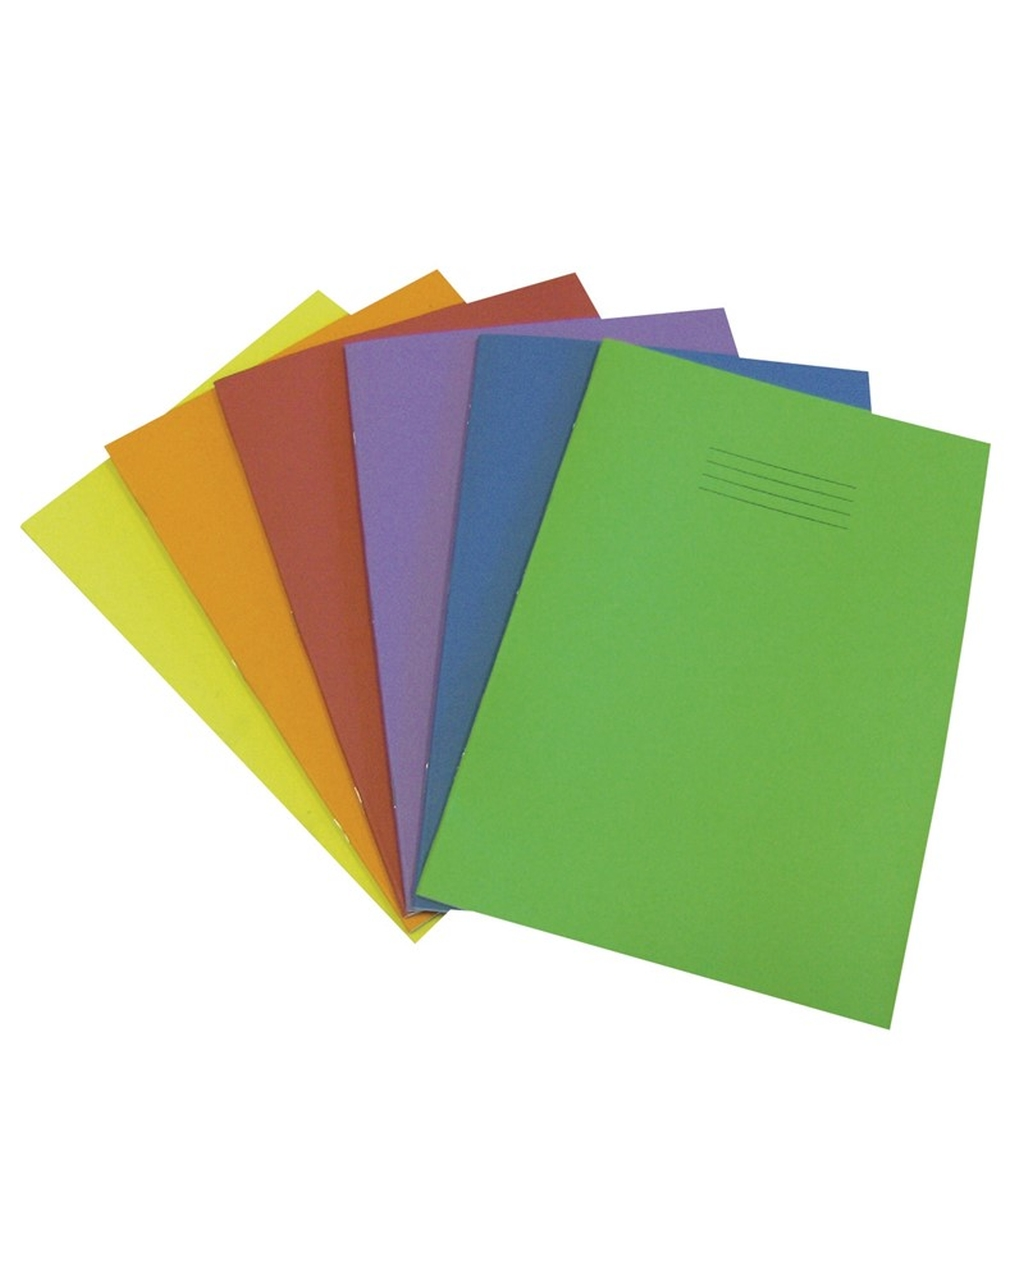 Exercise Book A4 (297 x 210mm) Light Green Cover 6mm Ruled & Margin 80 Pages